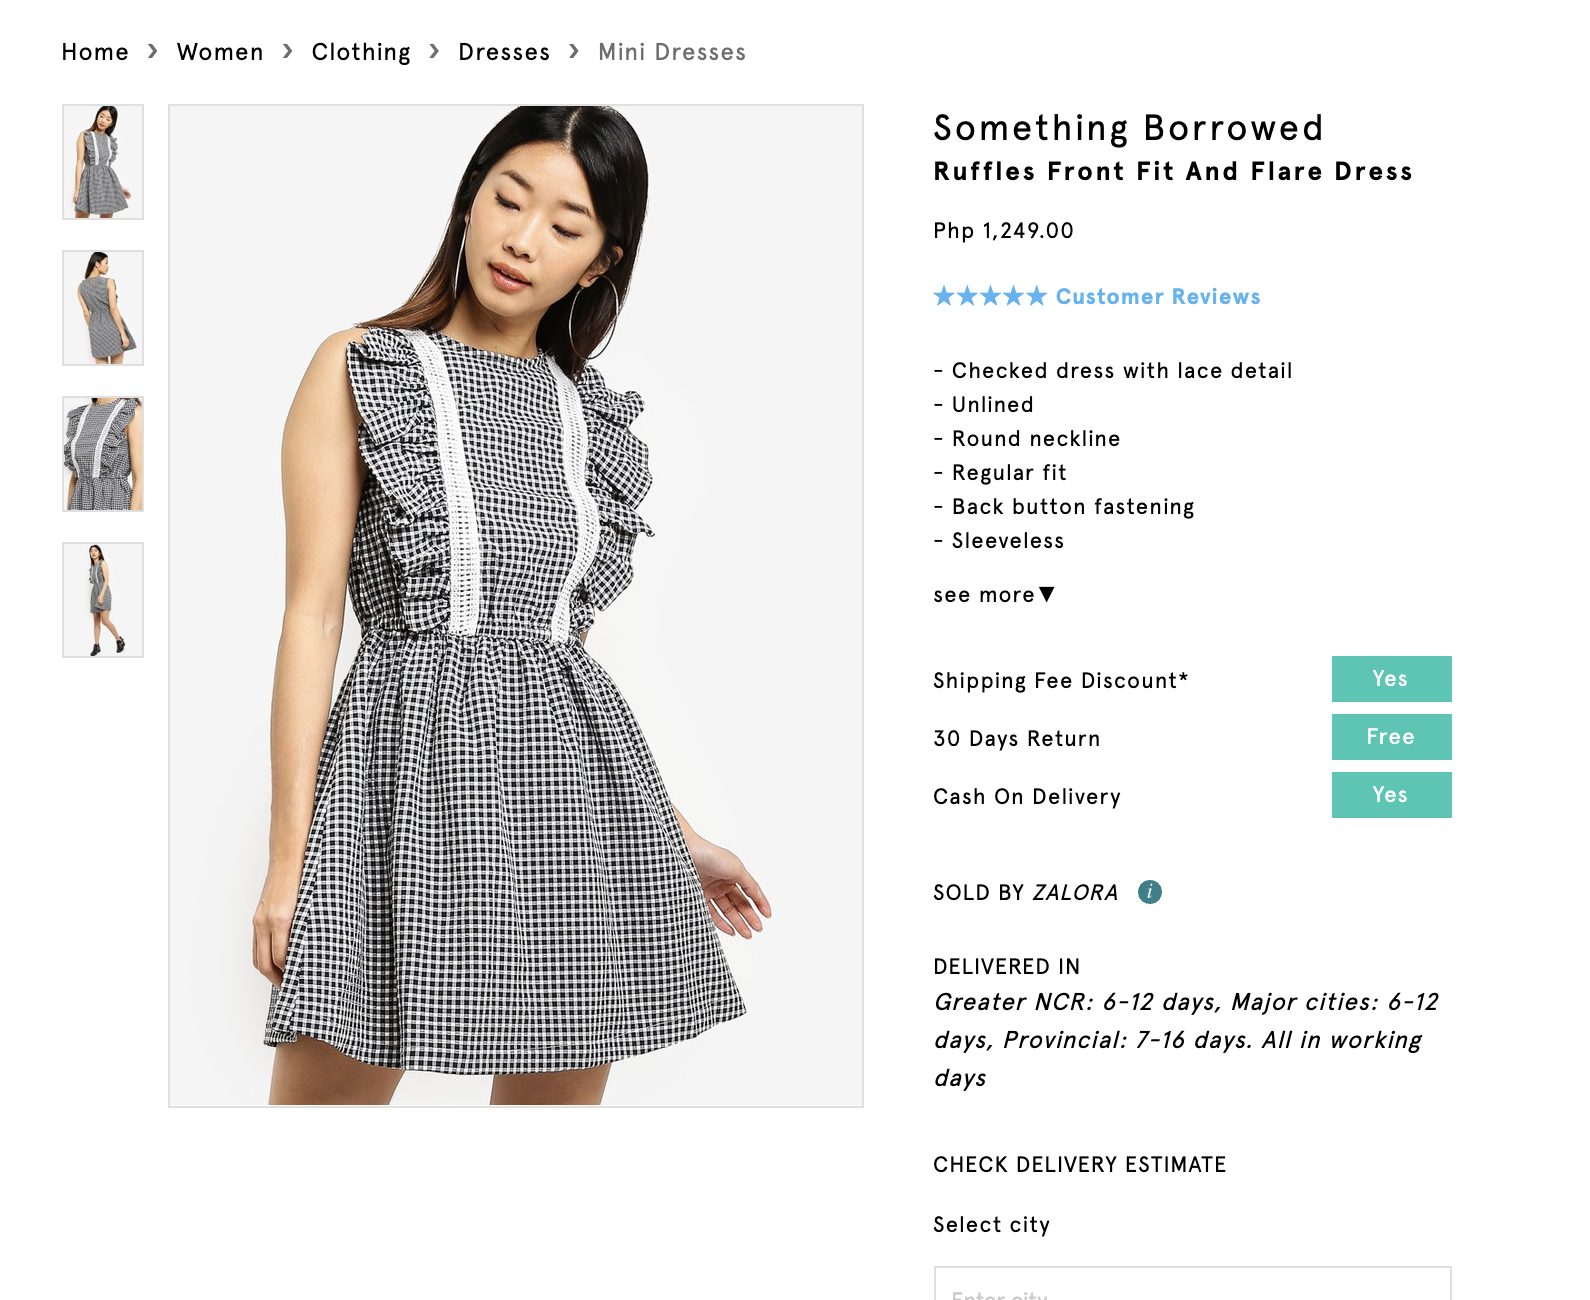 Screenshot of Something Borrowed Fit and Flare Dress